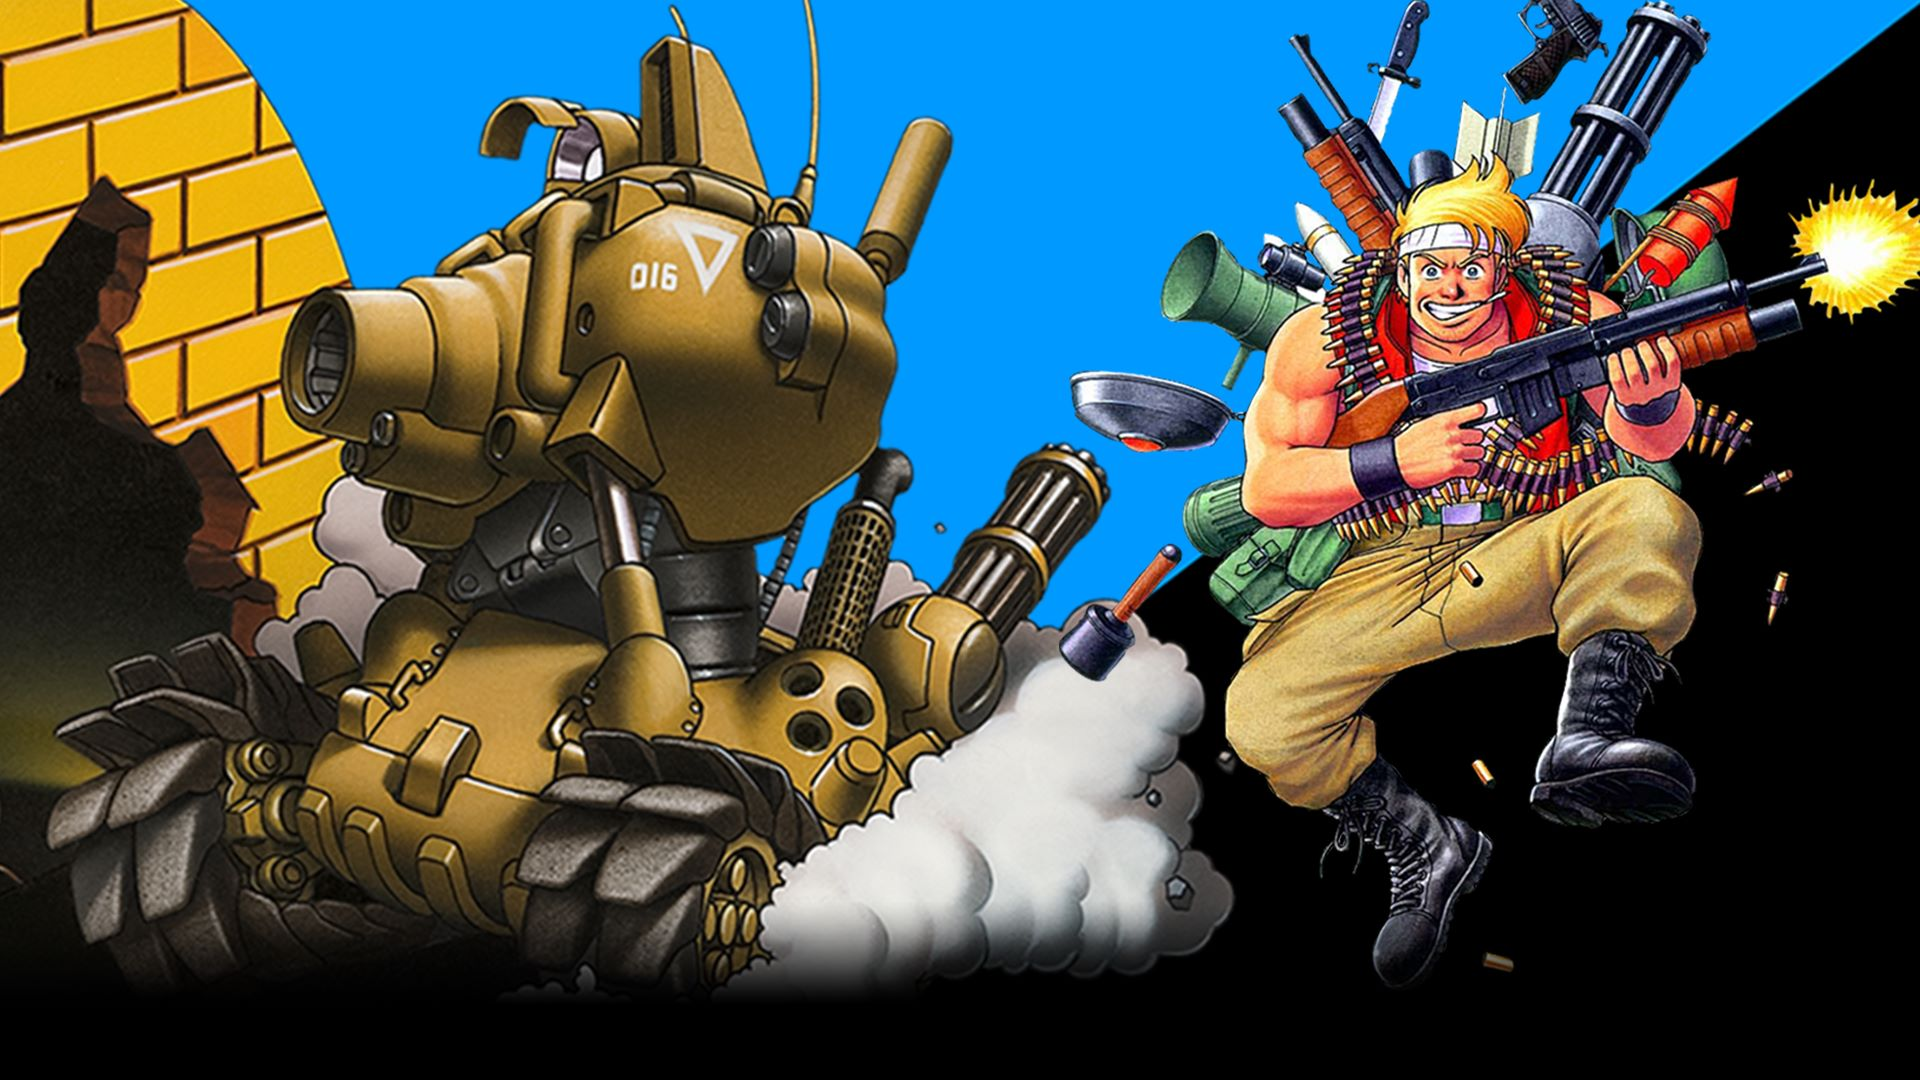 Snk Developing A New Metal Slug For Console Nintendo Wire